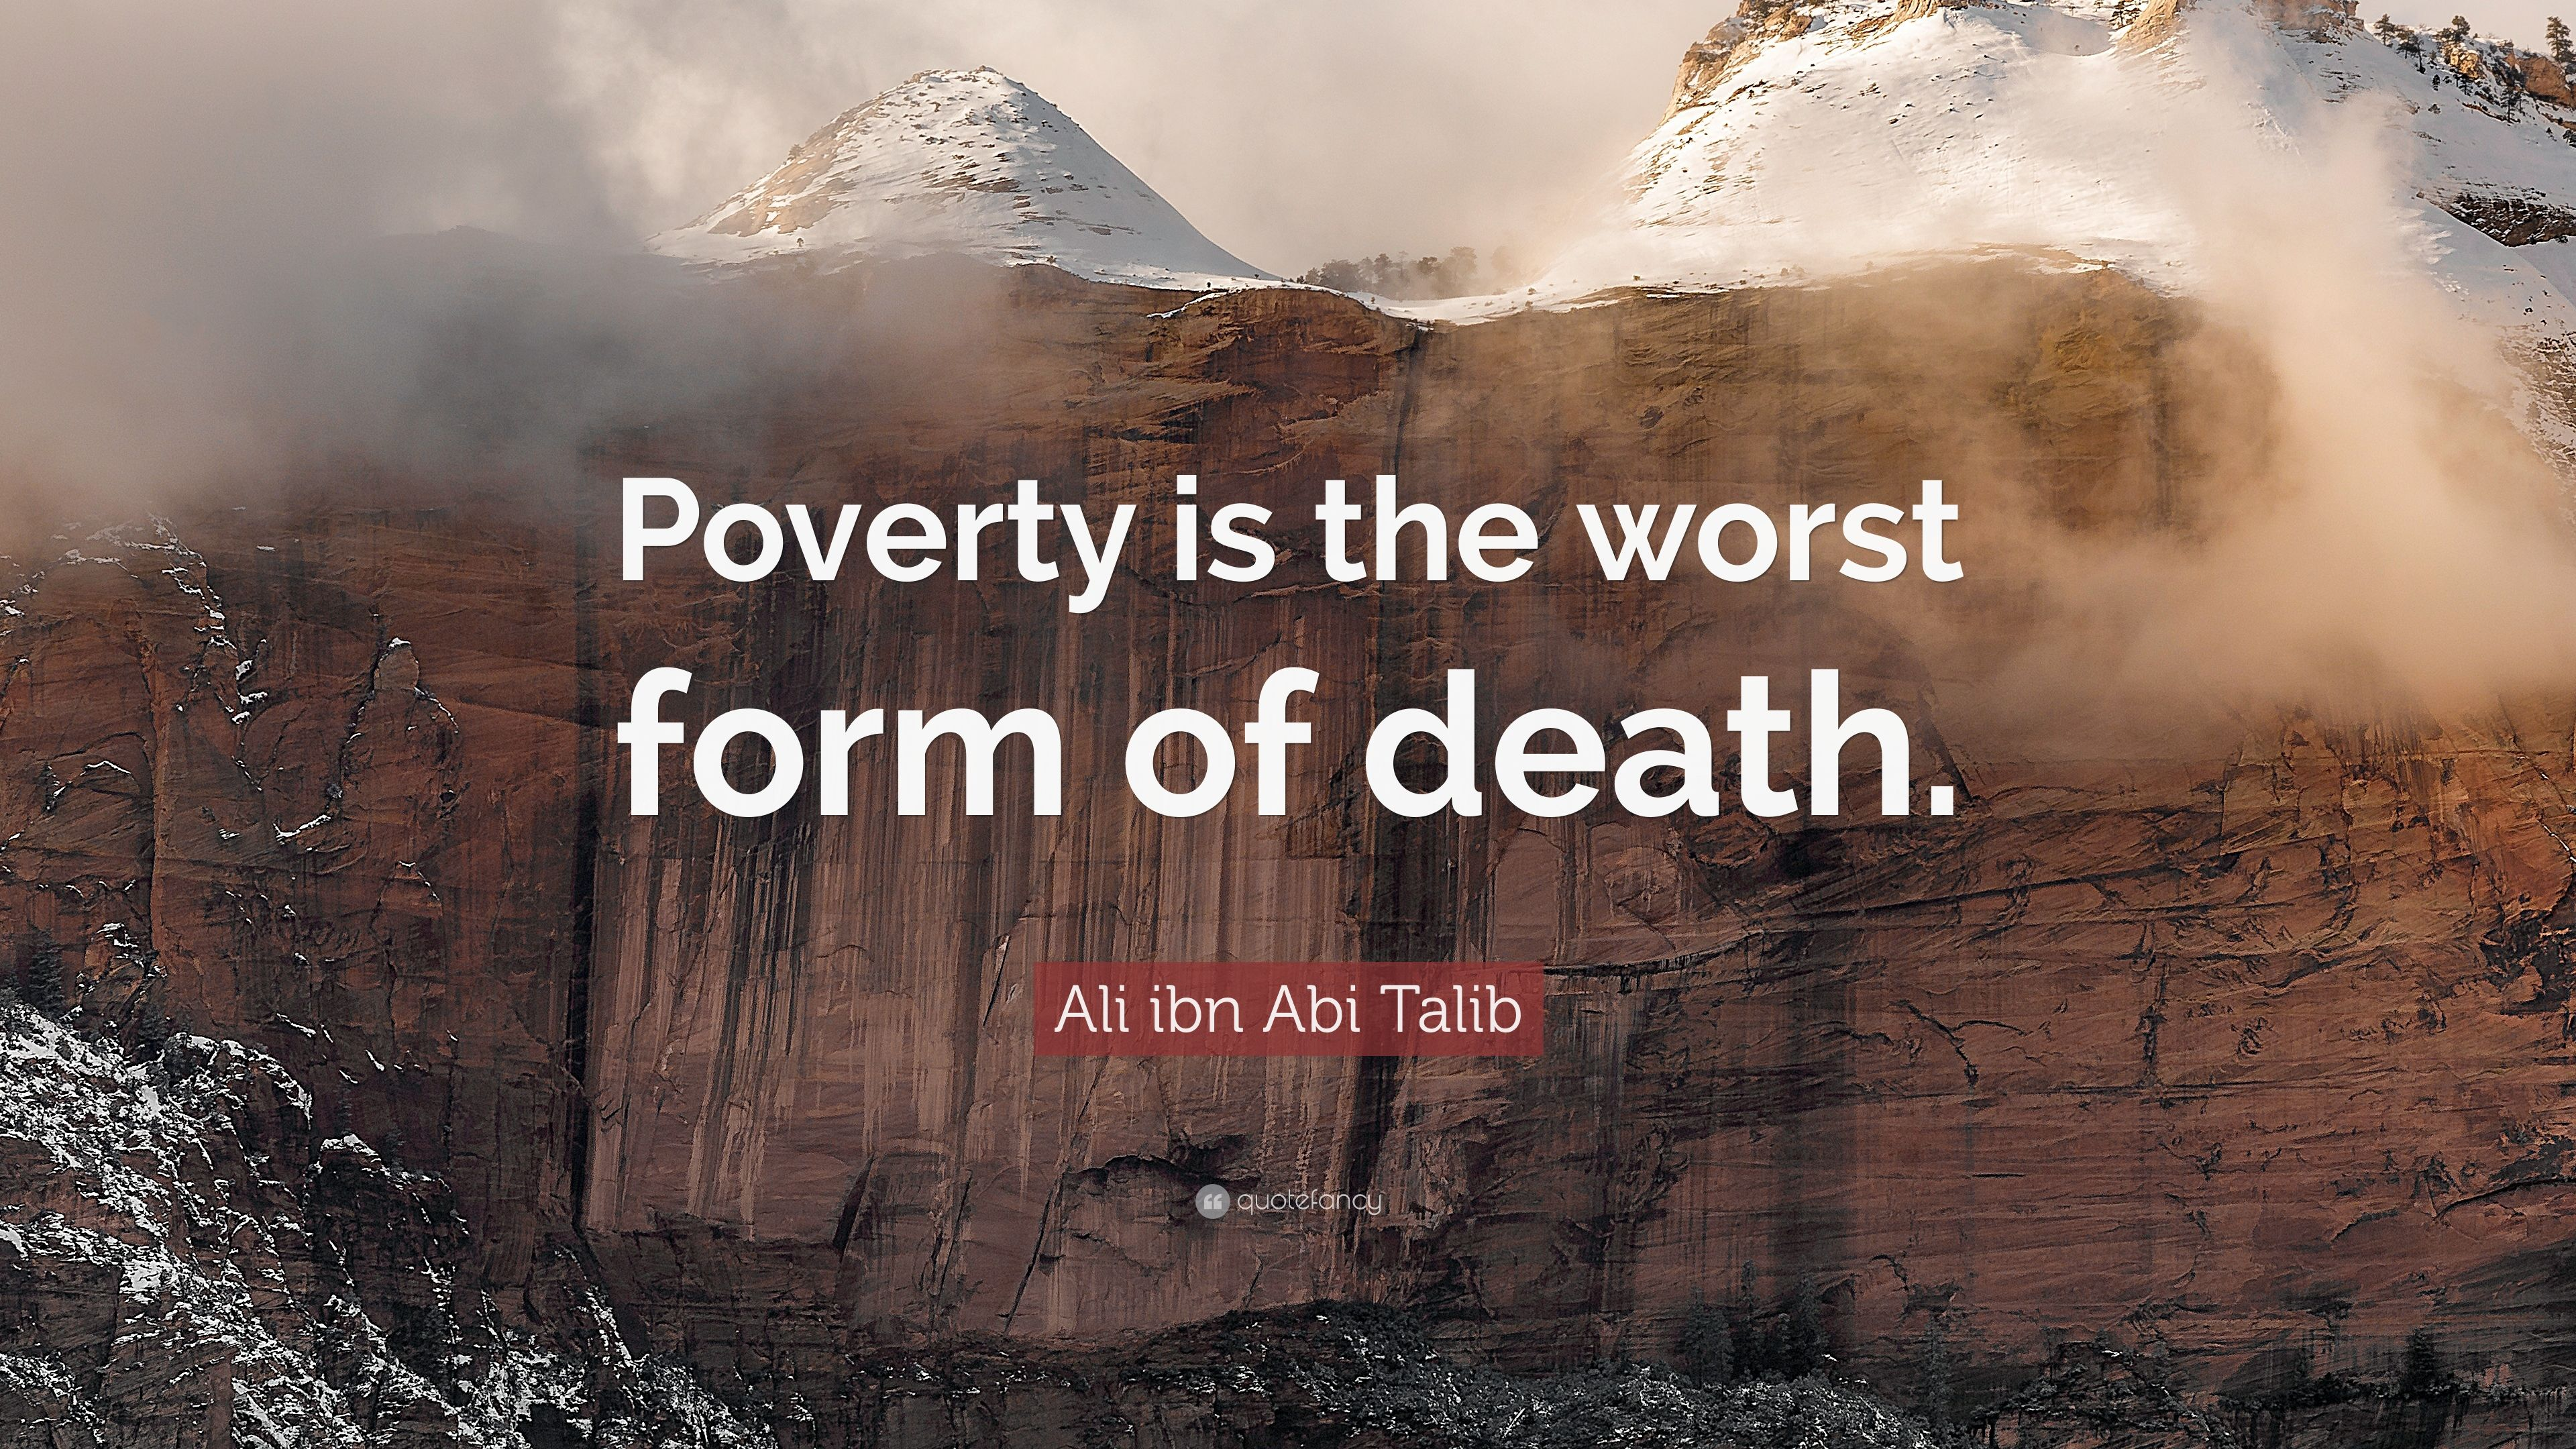 Ali Ibn Abi Talib Quote Poverty Is The Worst Form Of Death - Worst poverty in the world